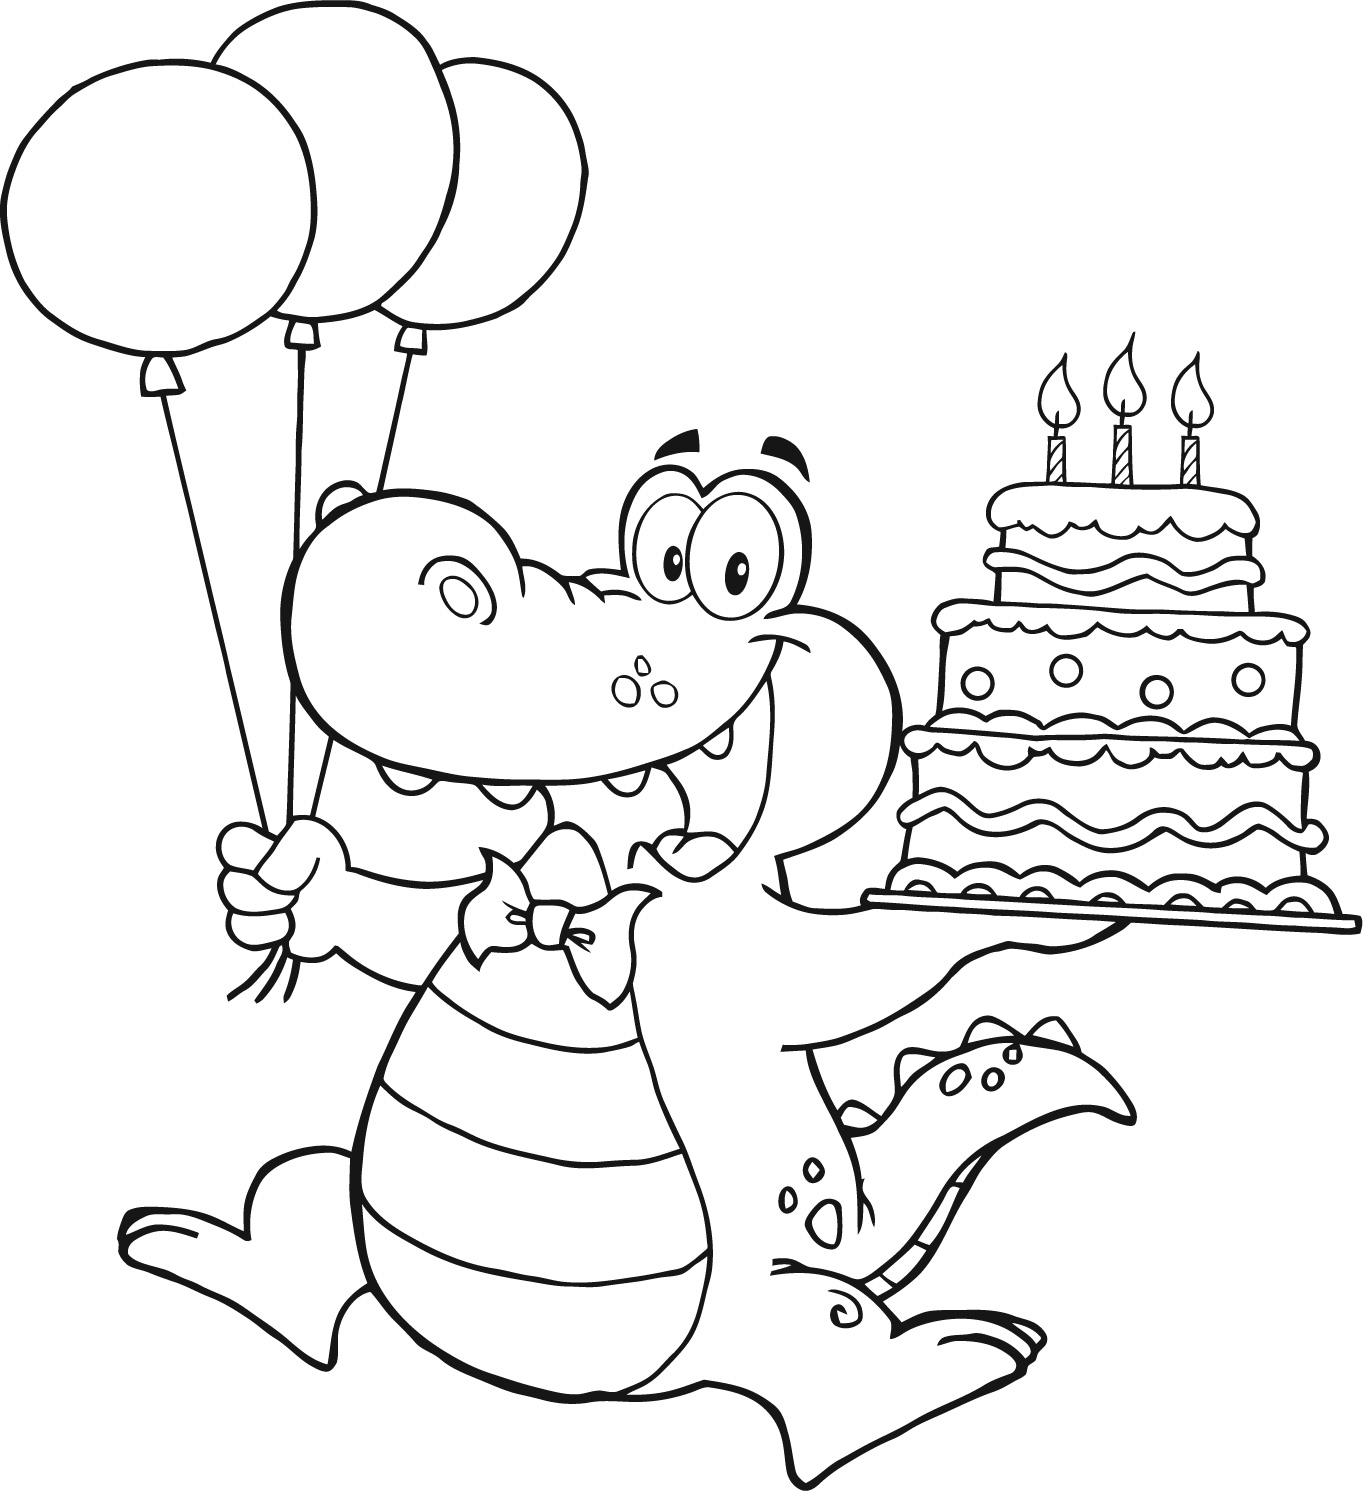 colour in birthday pictures ; alligator-holding-birthday-cake-for-kids